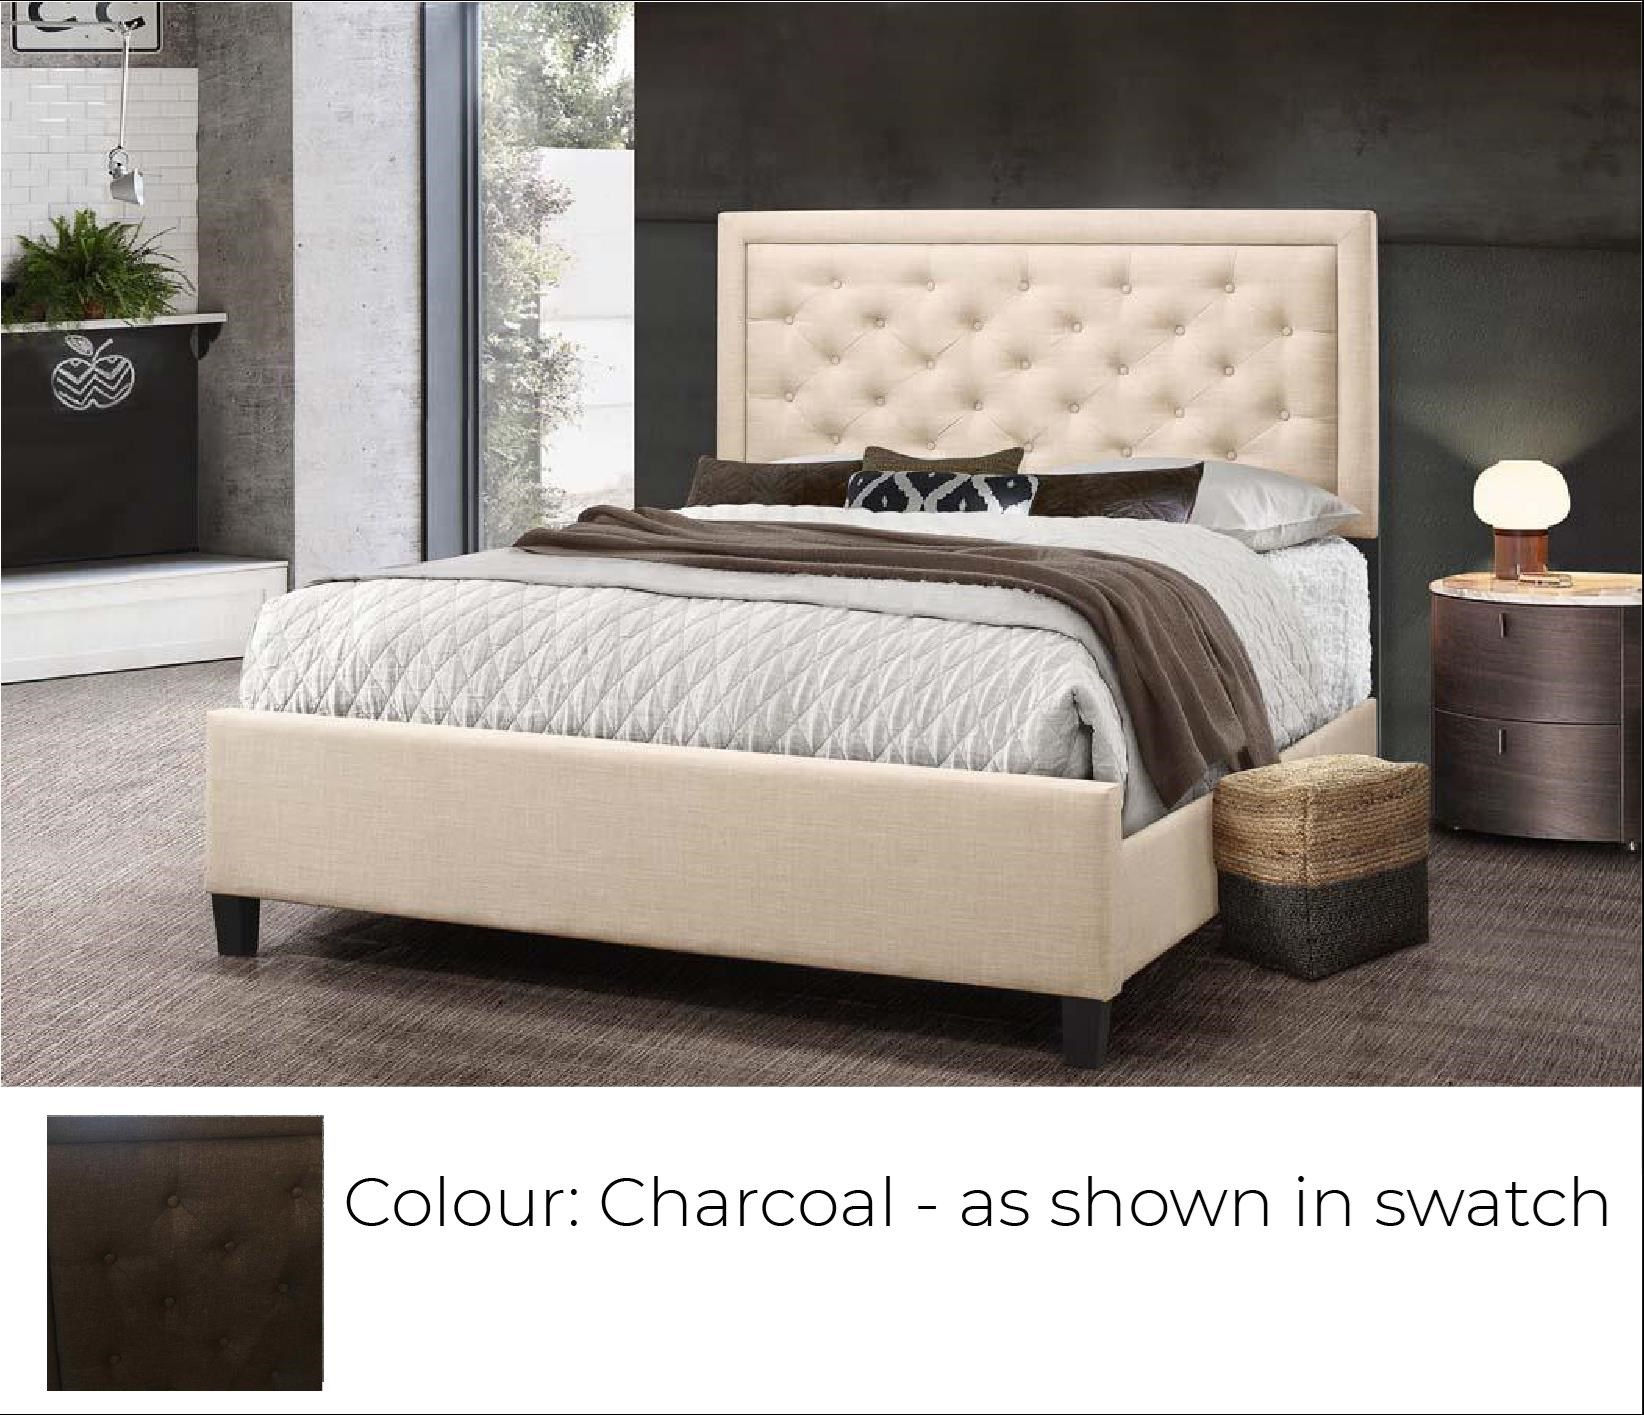 B622 Upholstered Bed - Charcoal at Bennett's Furniture and Mattresses